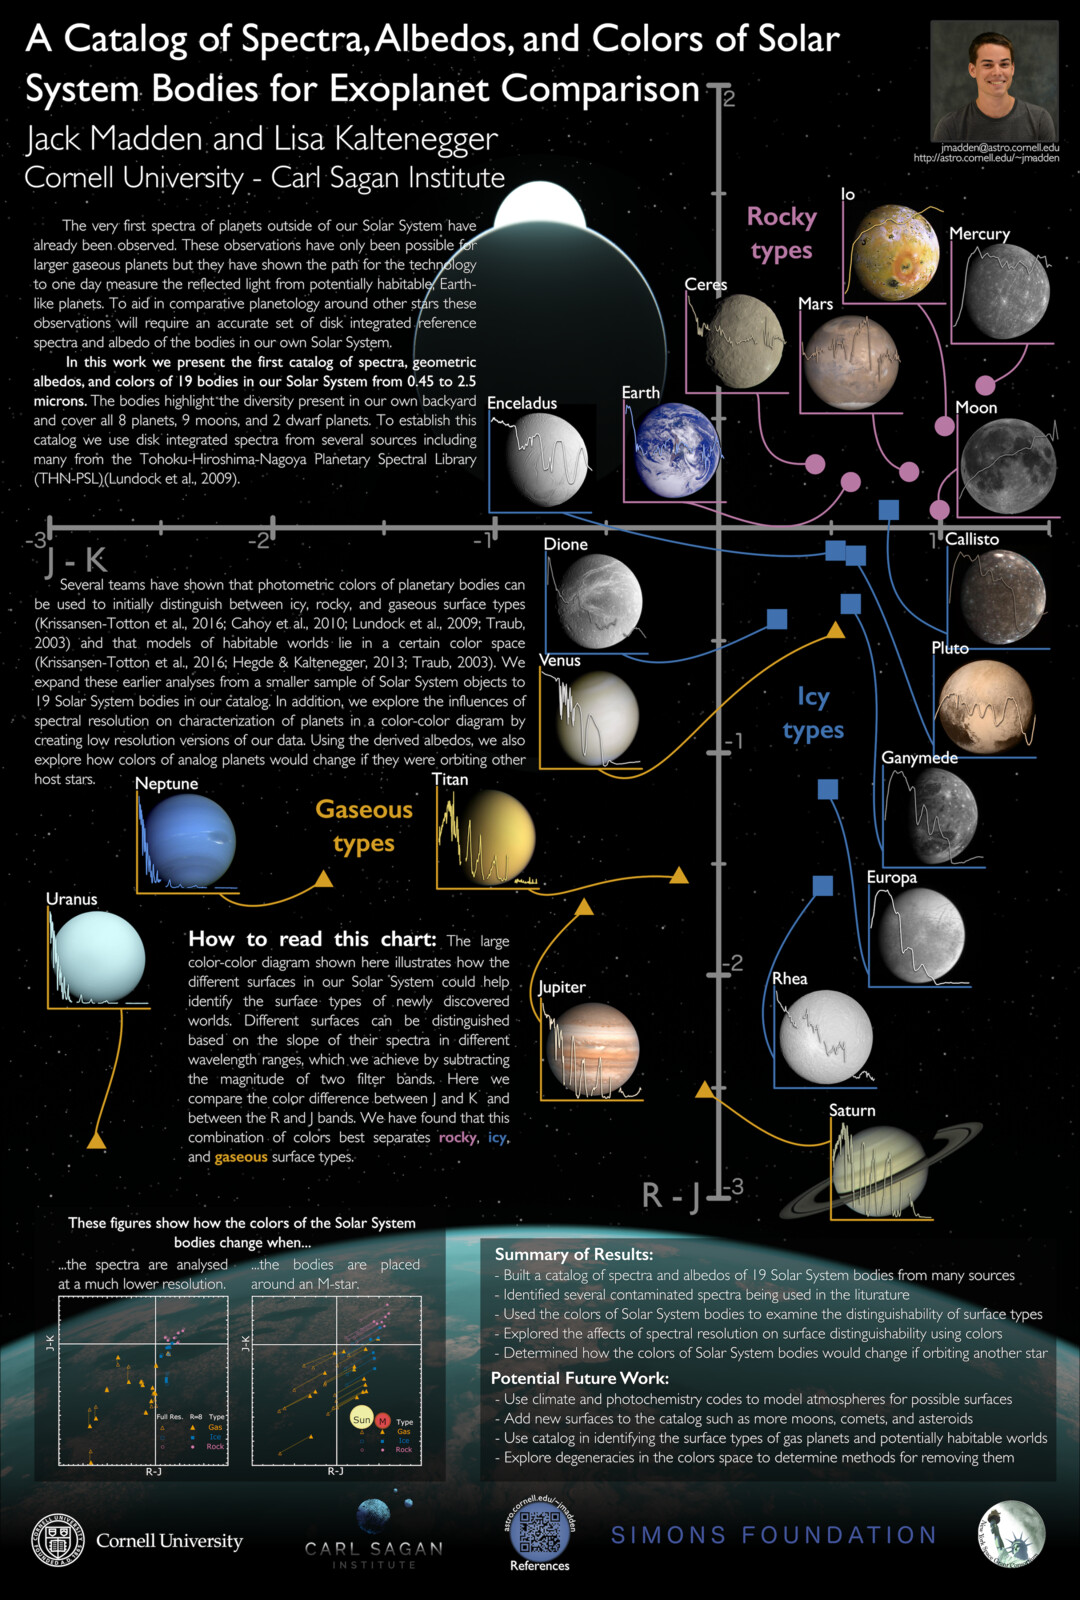 [Poster] A Catalog of Spectra, Albedos, and Colors of Solar System Bodies for Exoplanet Comparison